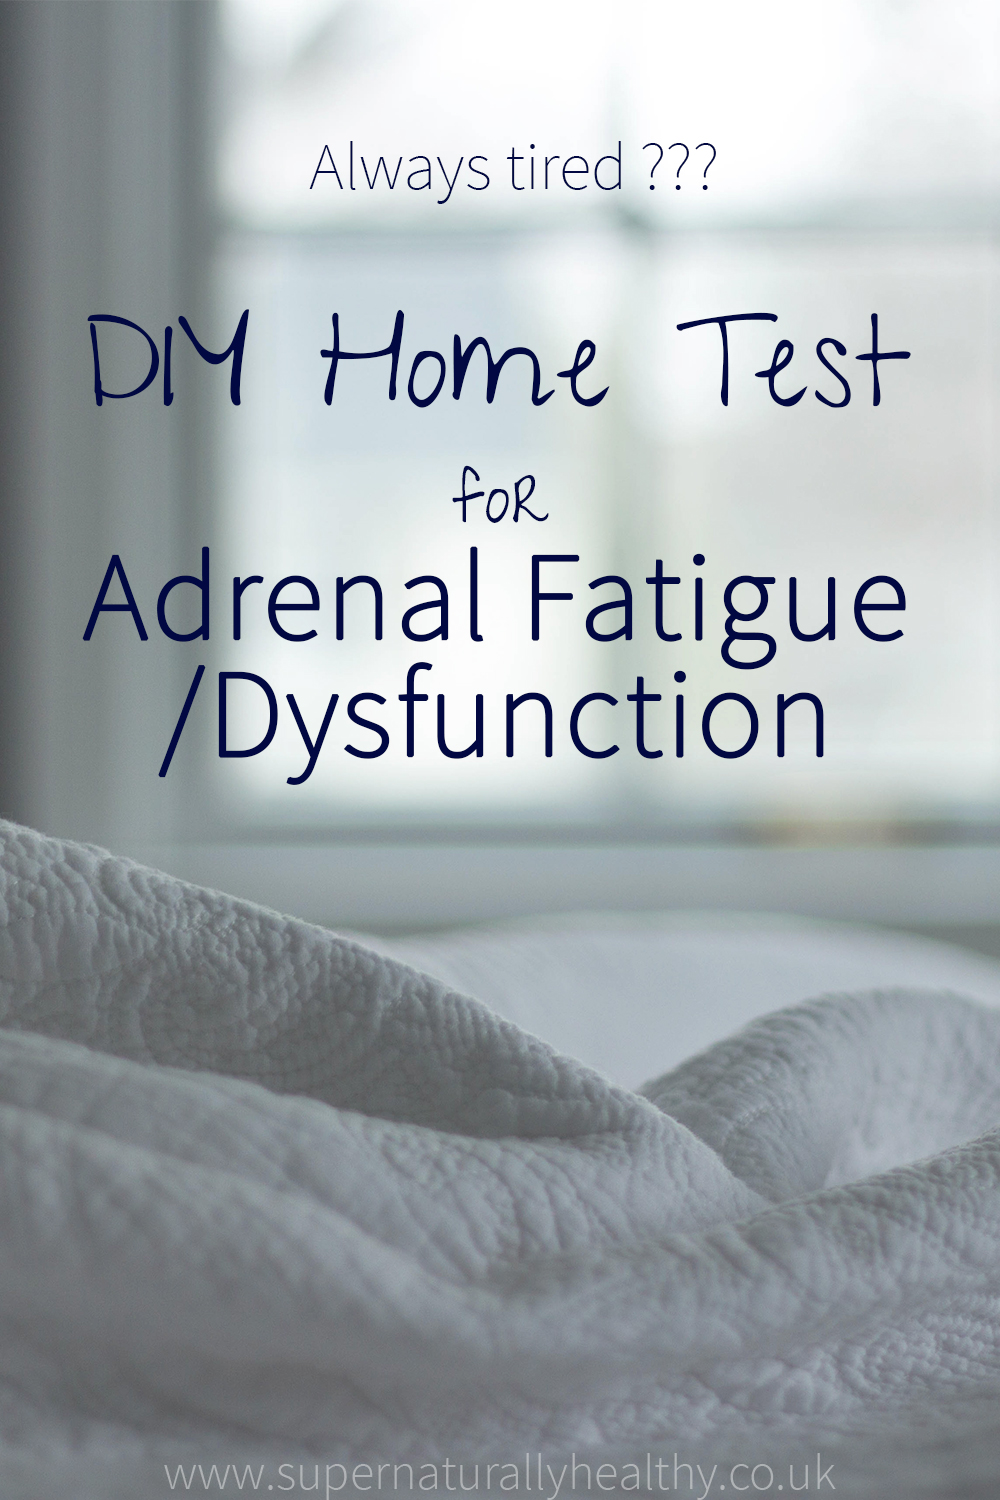 diy-home-test-for-adrenal-fatiguedysfunction